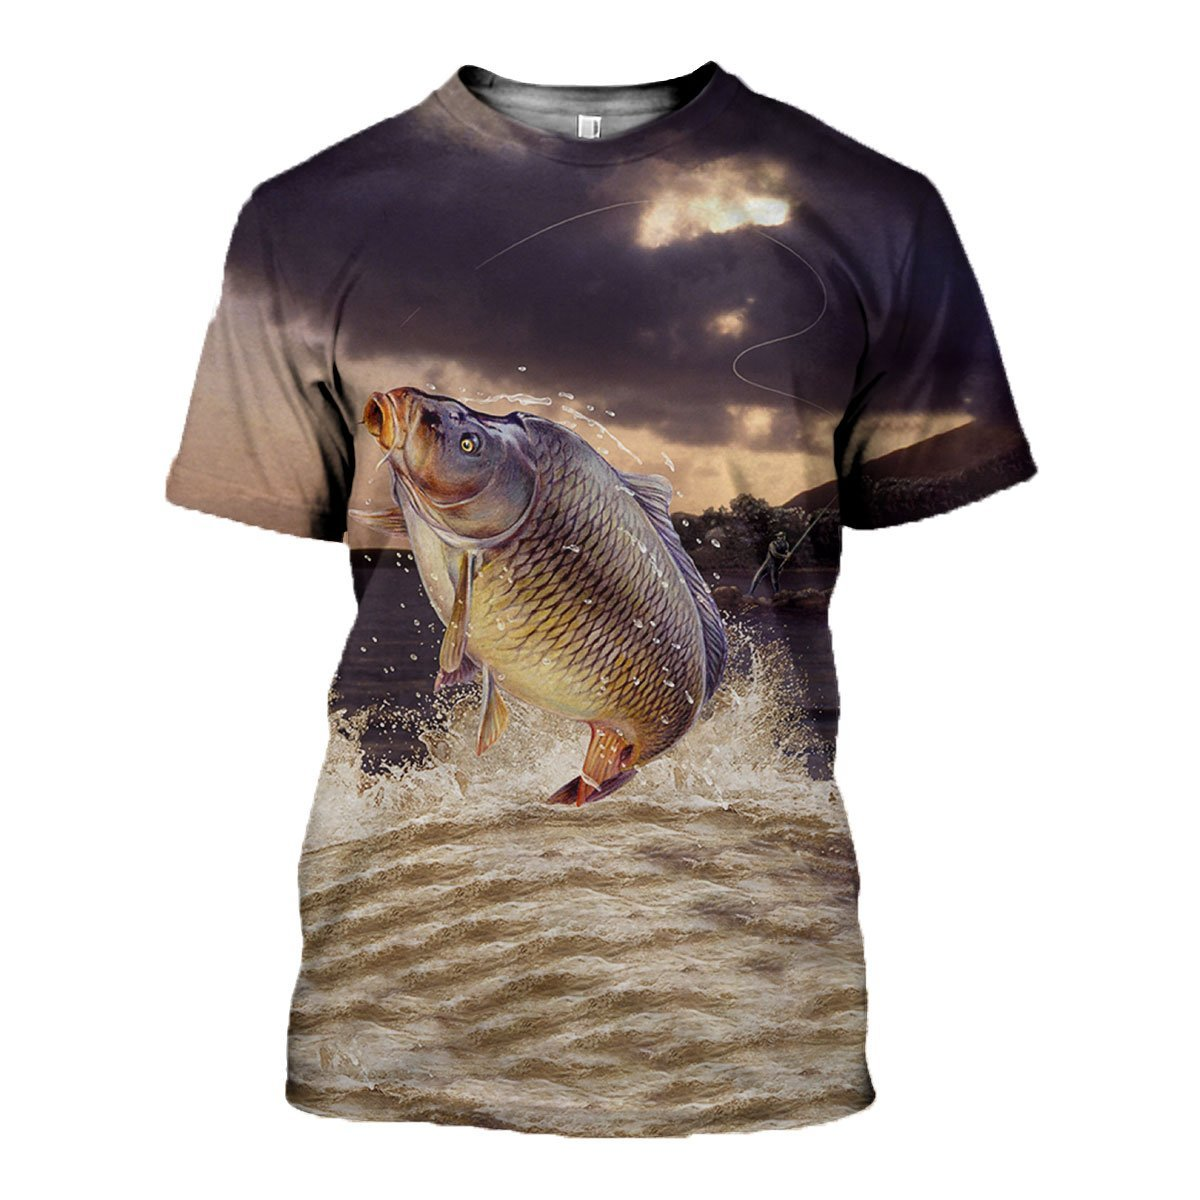 3D All Over Printed Carp Fishing Shirts and Shorts